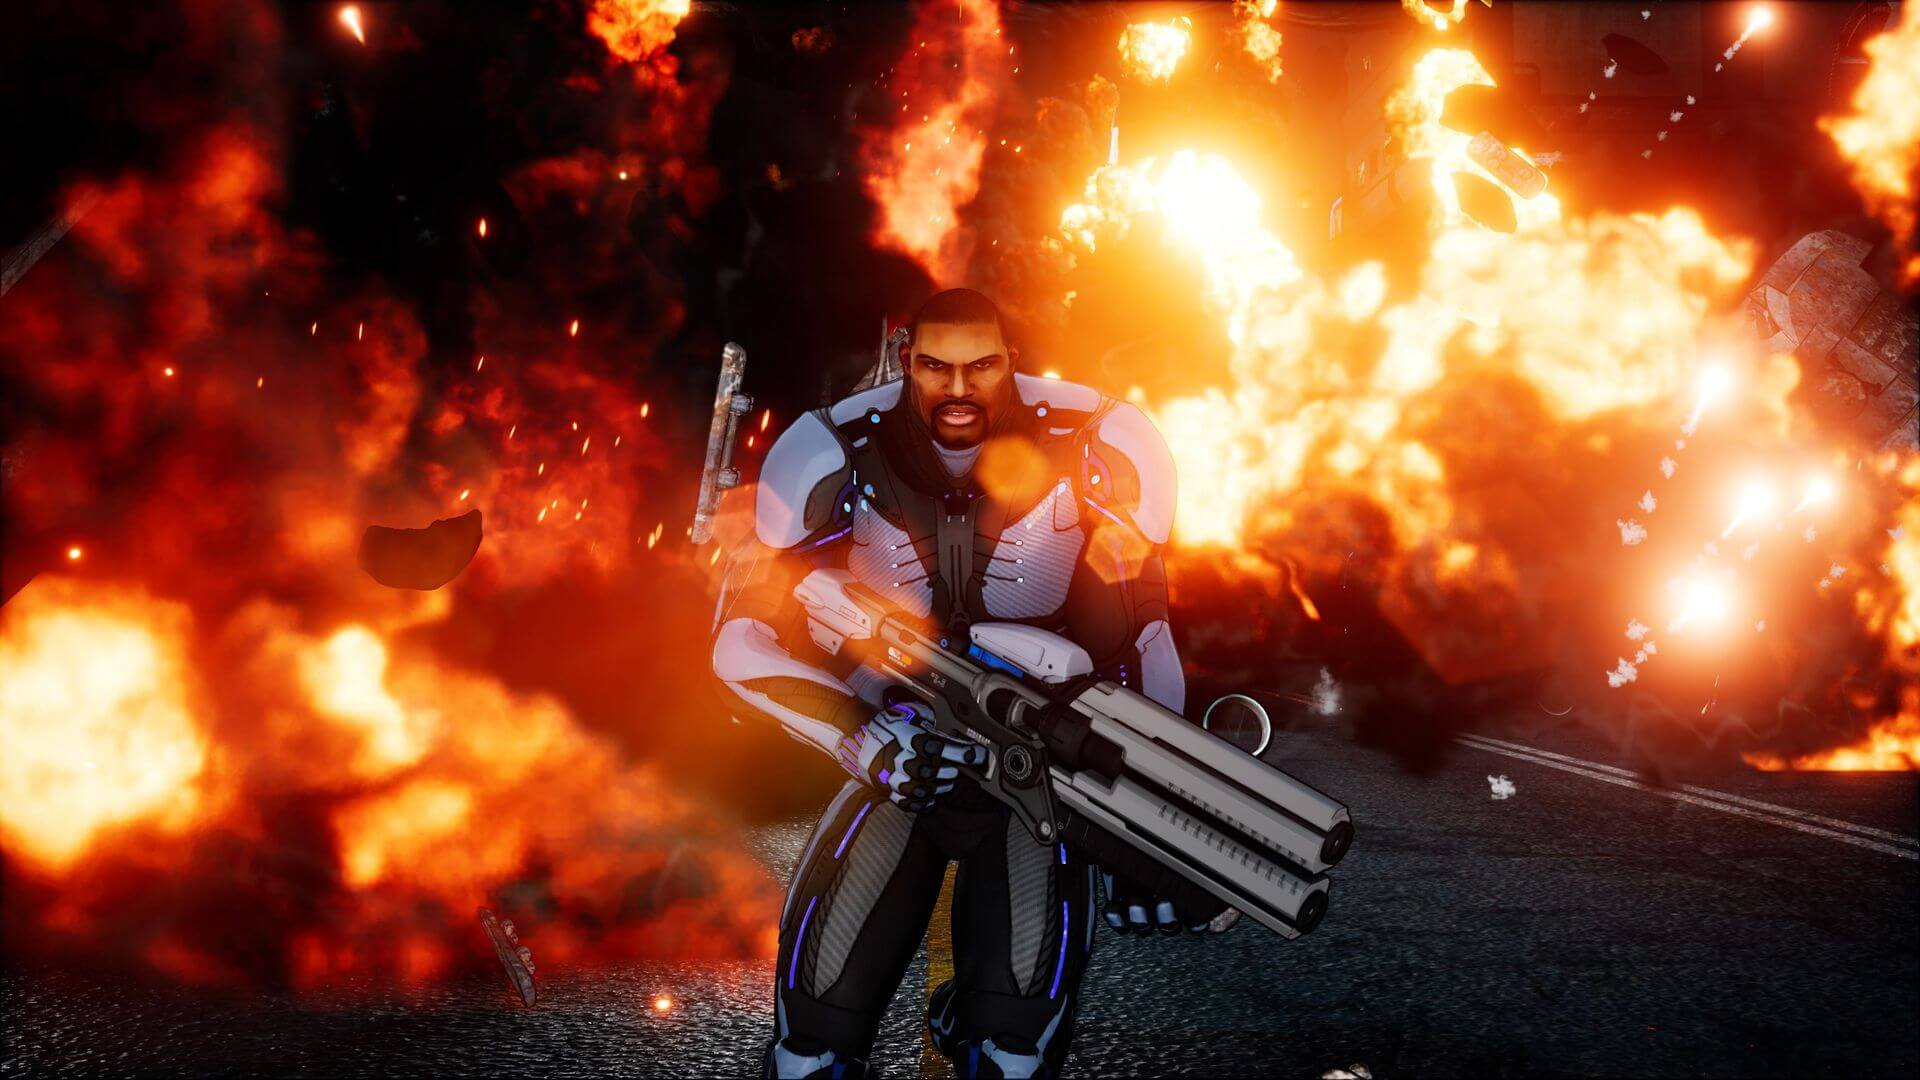 Crackdown 3 Will Take 12-16 Hours to Finish, But Can Be Speed Runned in 3